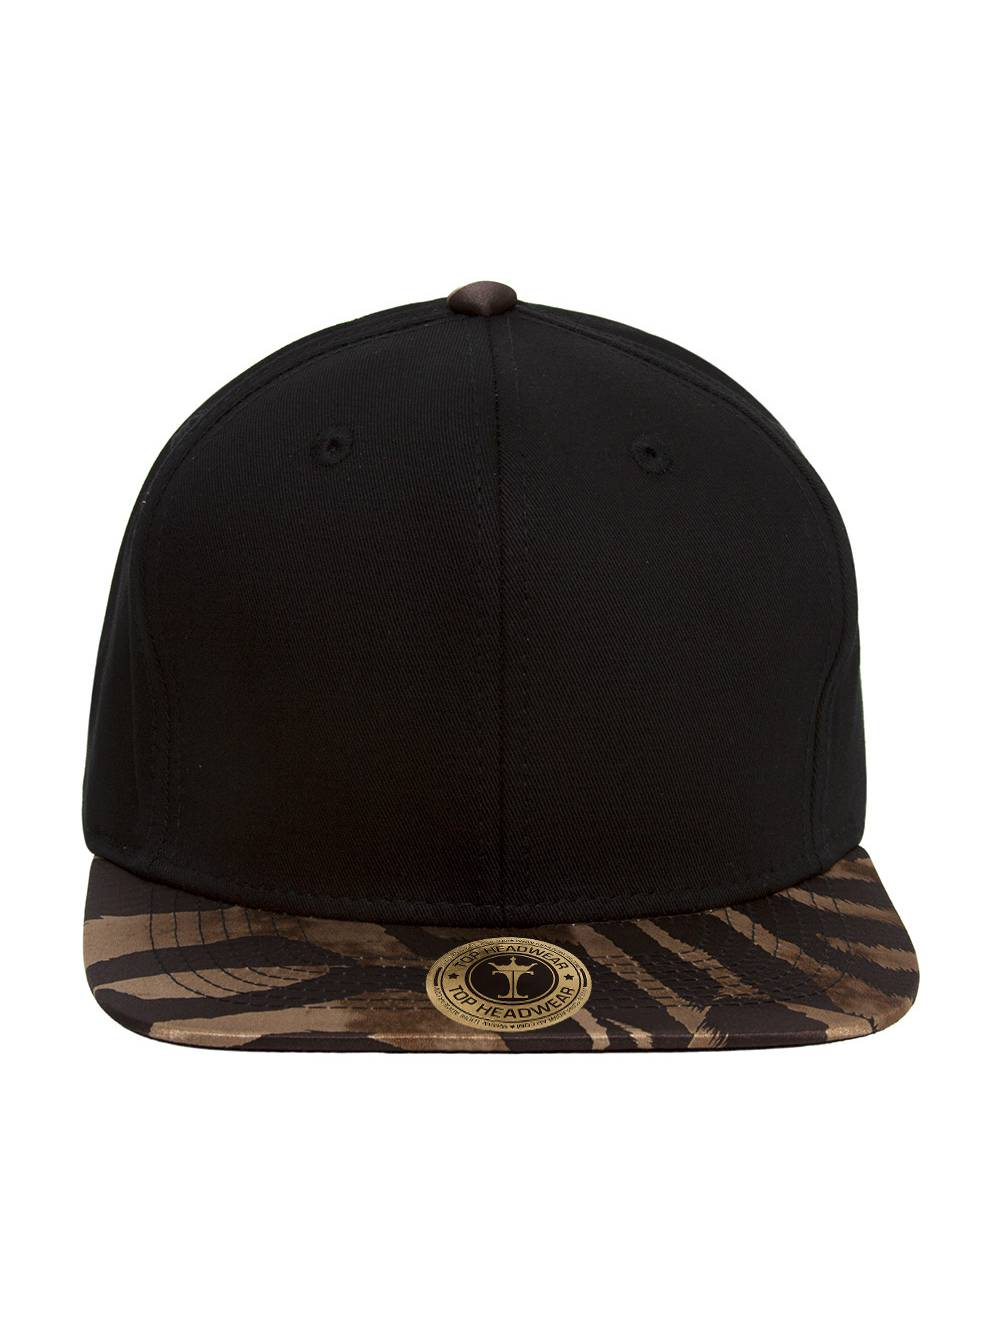 TopHeadwear Tiger Stripes Two-Tone Adjustable Snapback